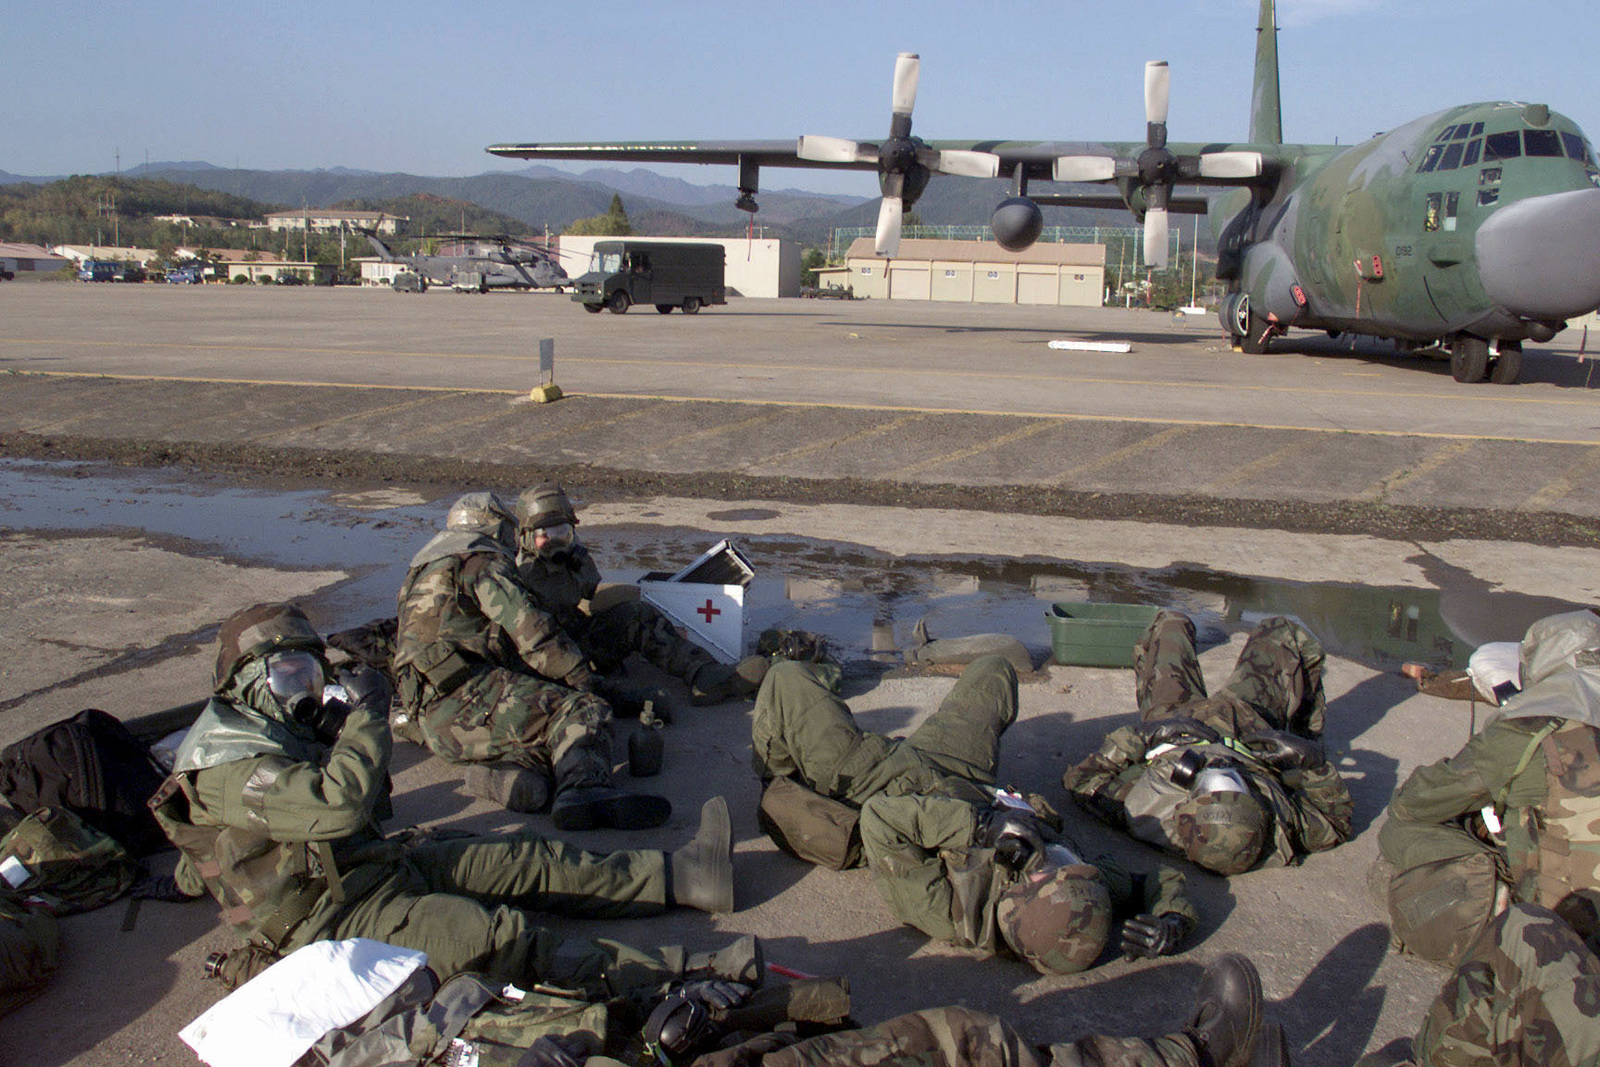 Several US Air Force members of the 353rd Special Operations Group aircraft maintainers, deployed to Taegu Air Base, Korea, from Kadena Air Base, Okinawa, take cover in a simulated bunker near their MC-130H Combat Talon II aircraft during exercise FOAL EAGLE 2000 on October 26th, 2000. FOAL EAGLE is held annually in South Korea to demonstrate U.S. and South Korean military cooperation and is the U.S. Militarys largest Joint-Service, Multi-National field training drill. This year's drill involves about 25,000 active duty, Reserve, and National Guard troops from the United States and bases throughout the Pacific Command